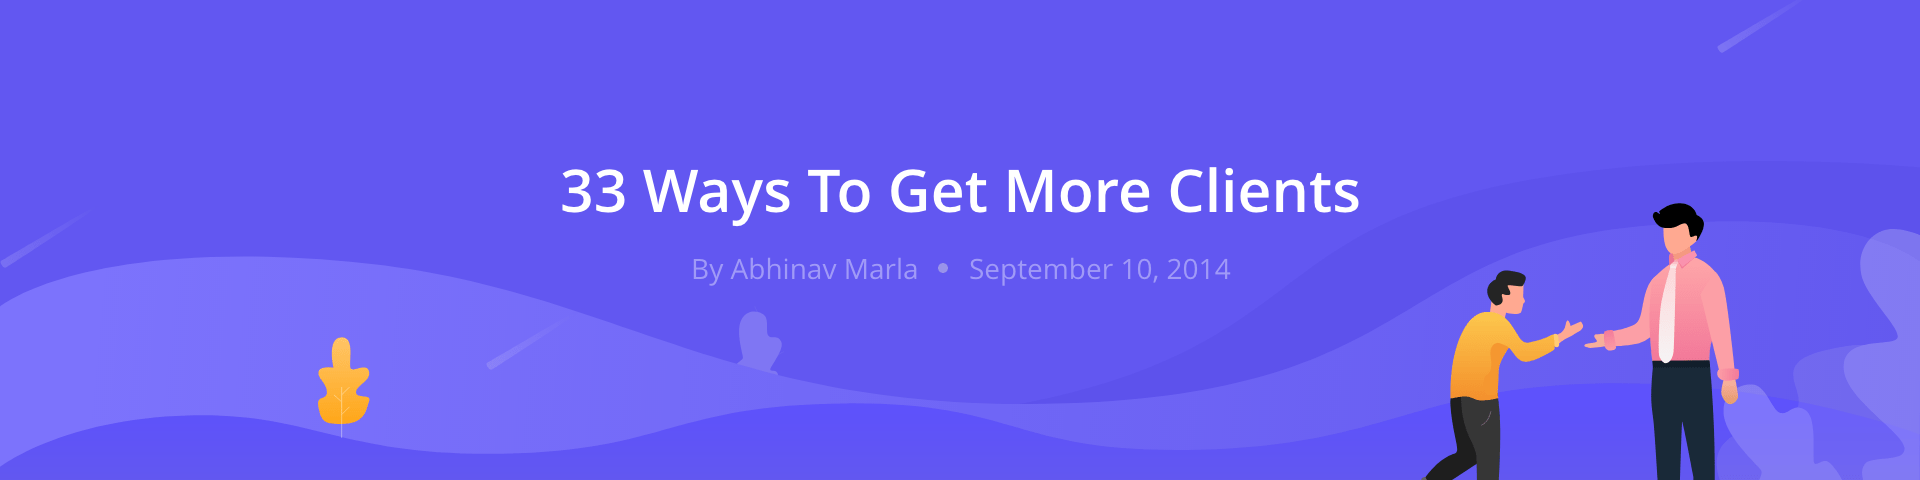 Get More 33 Ways To Get More Clients